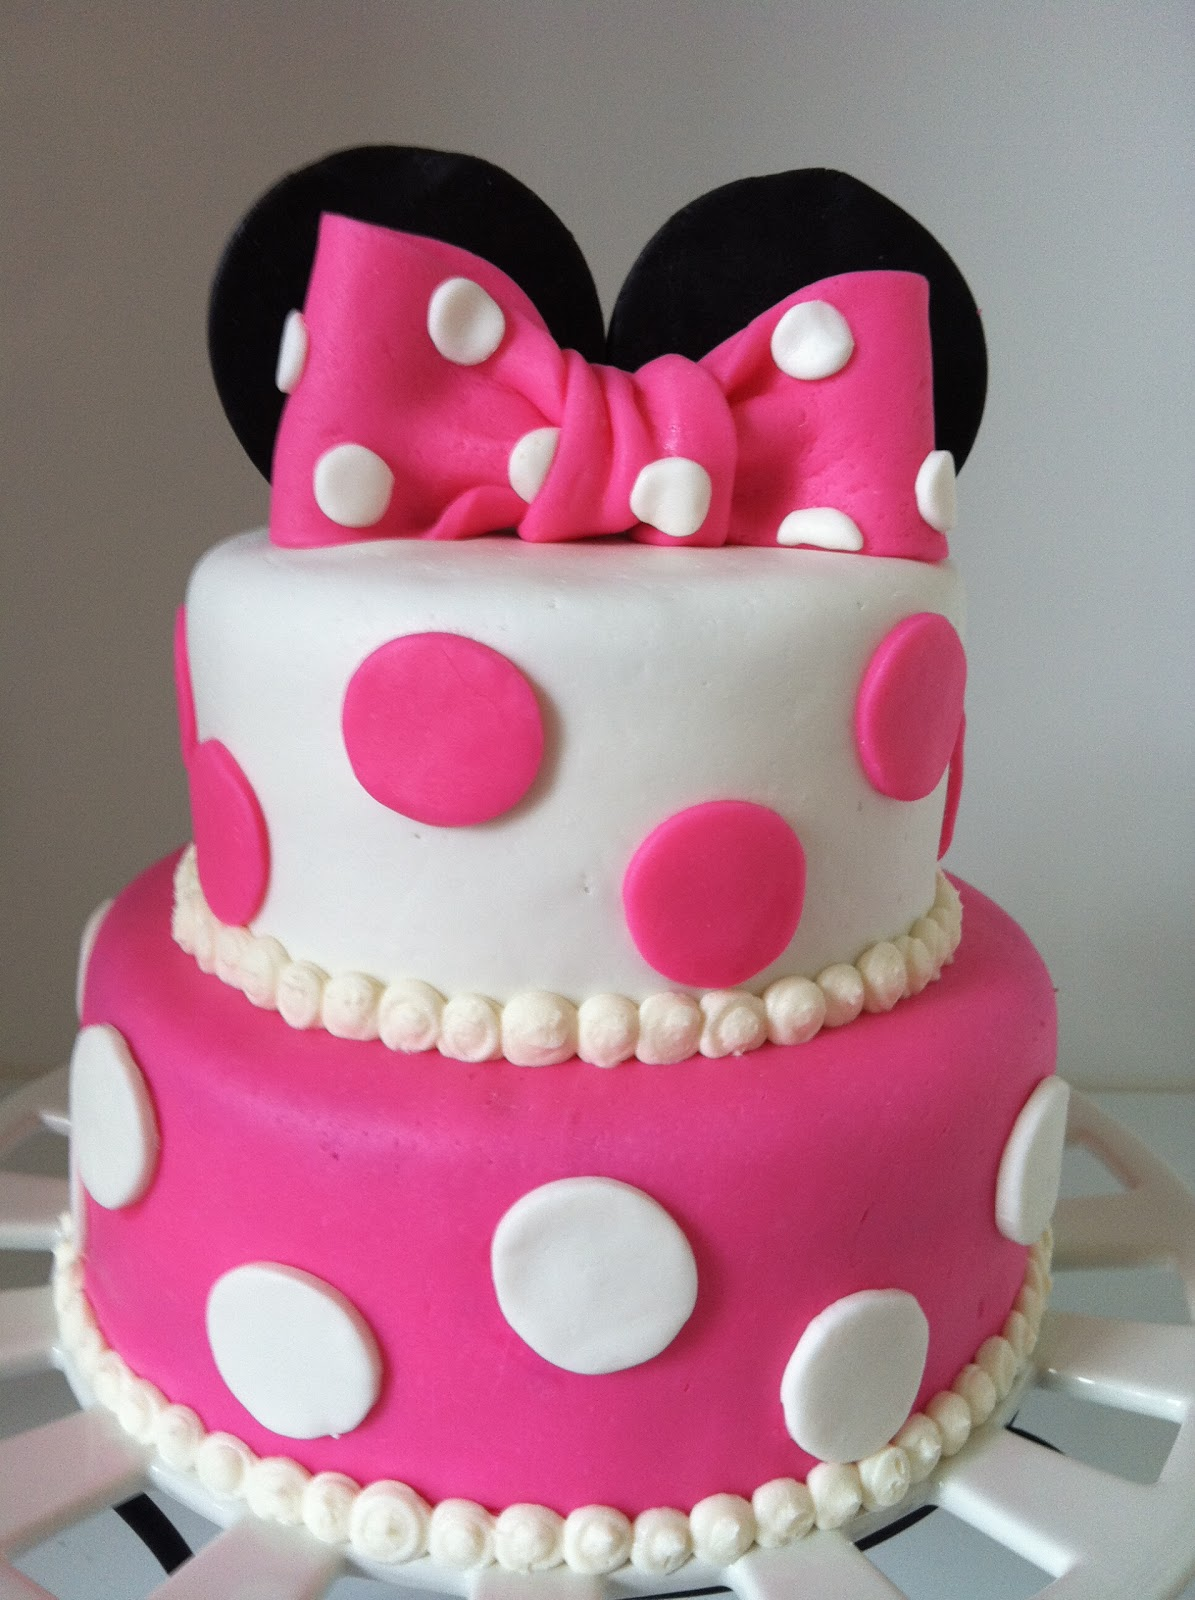 Best Cake Designs For Birthday Girl : The Weekly Sweet Experiment: Rachel s 2nd Birthday Cake